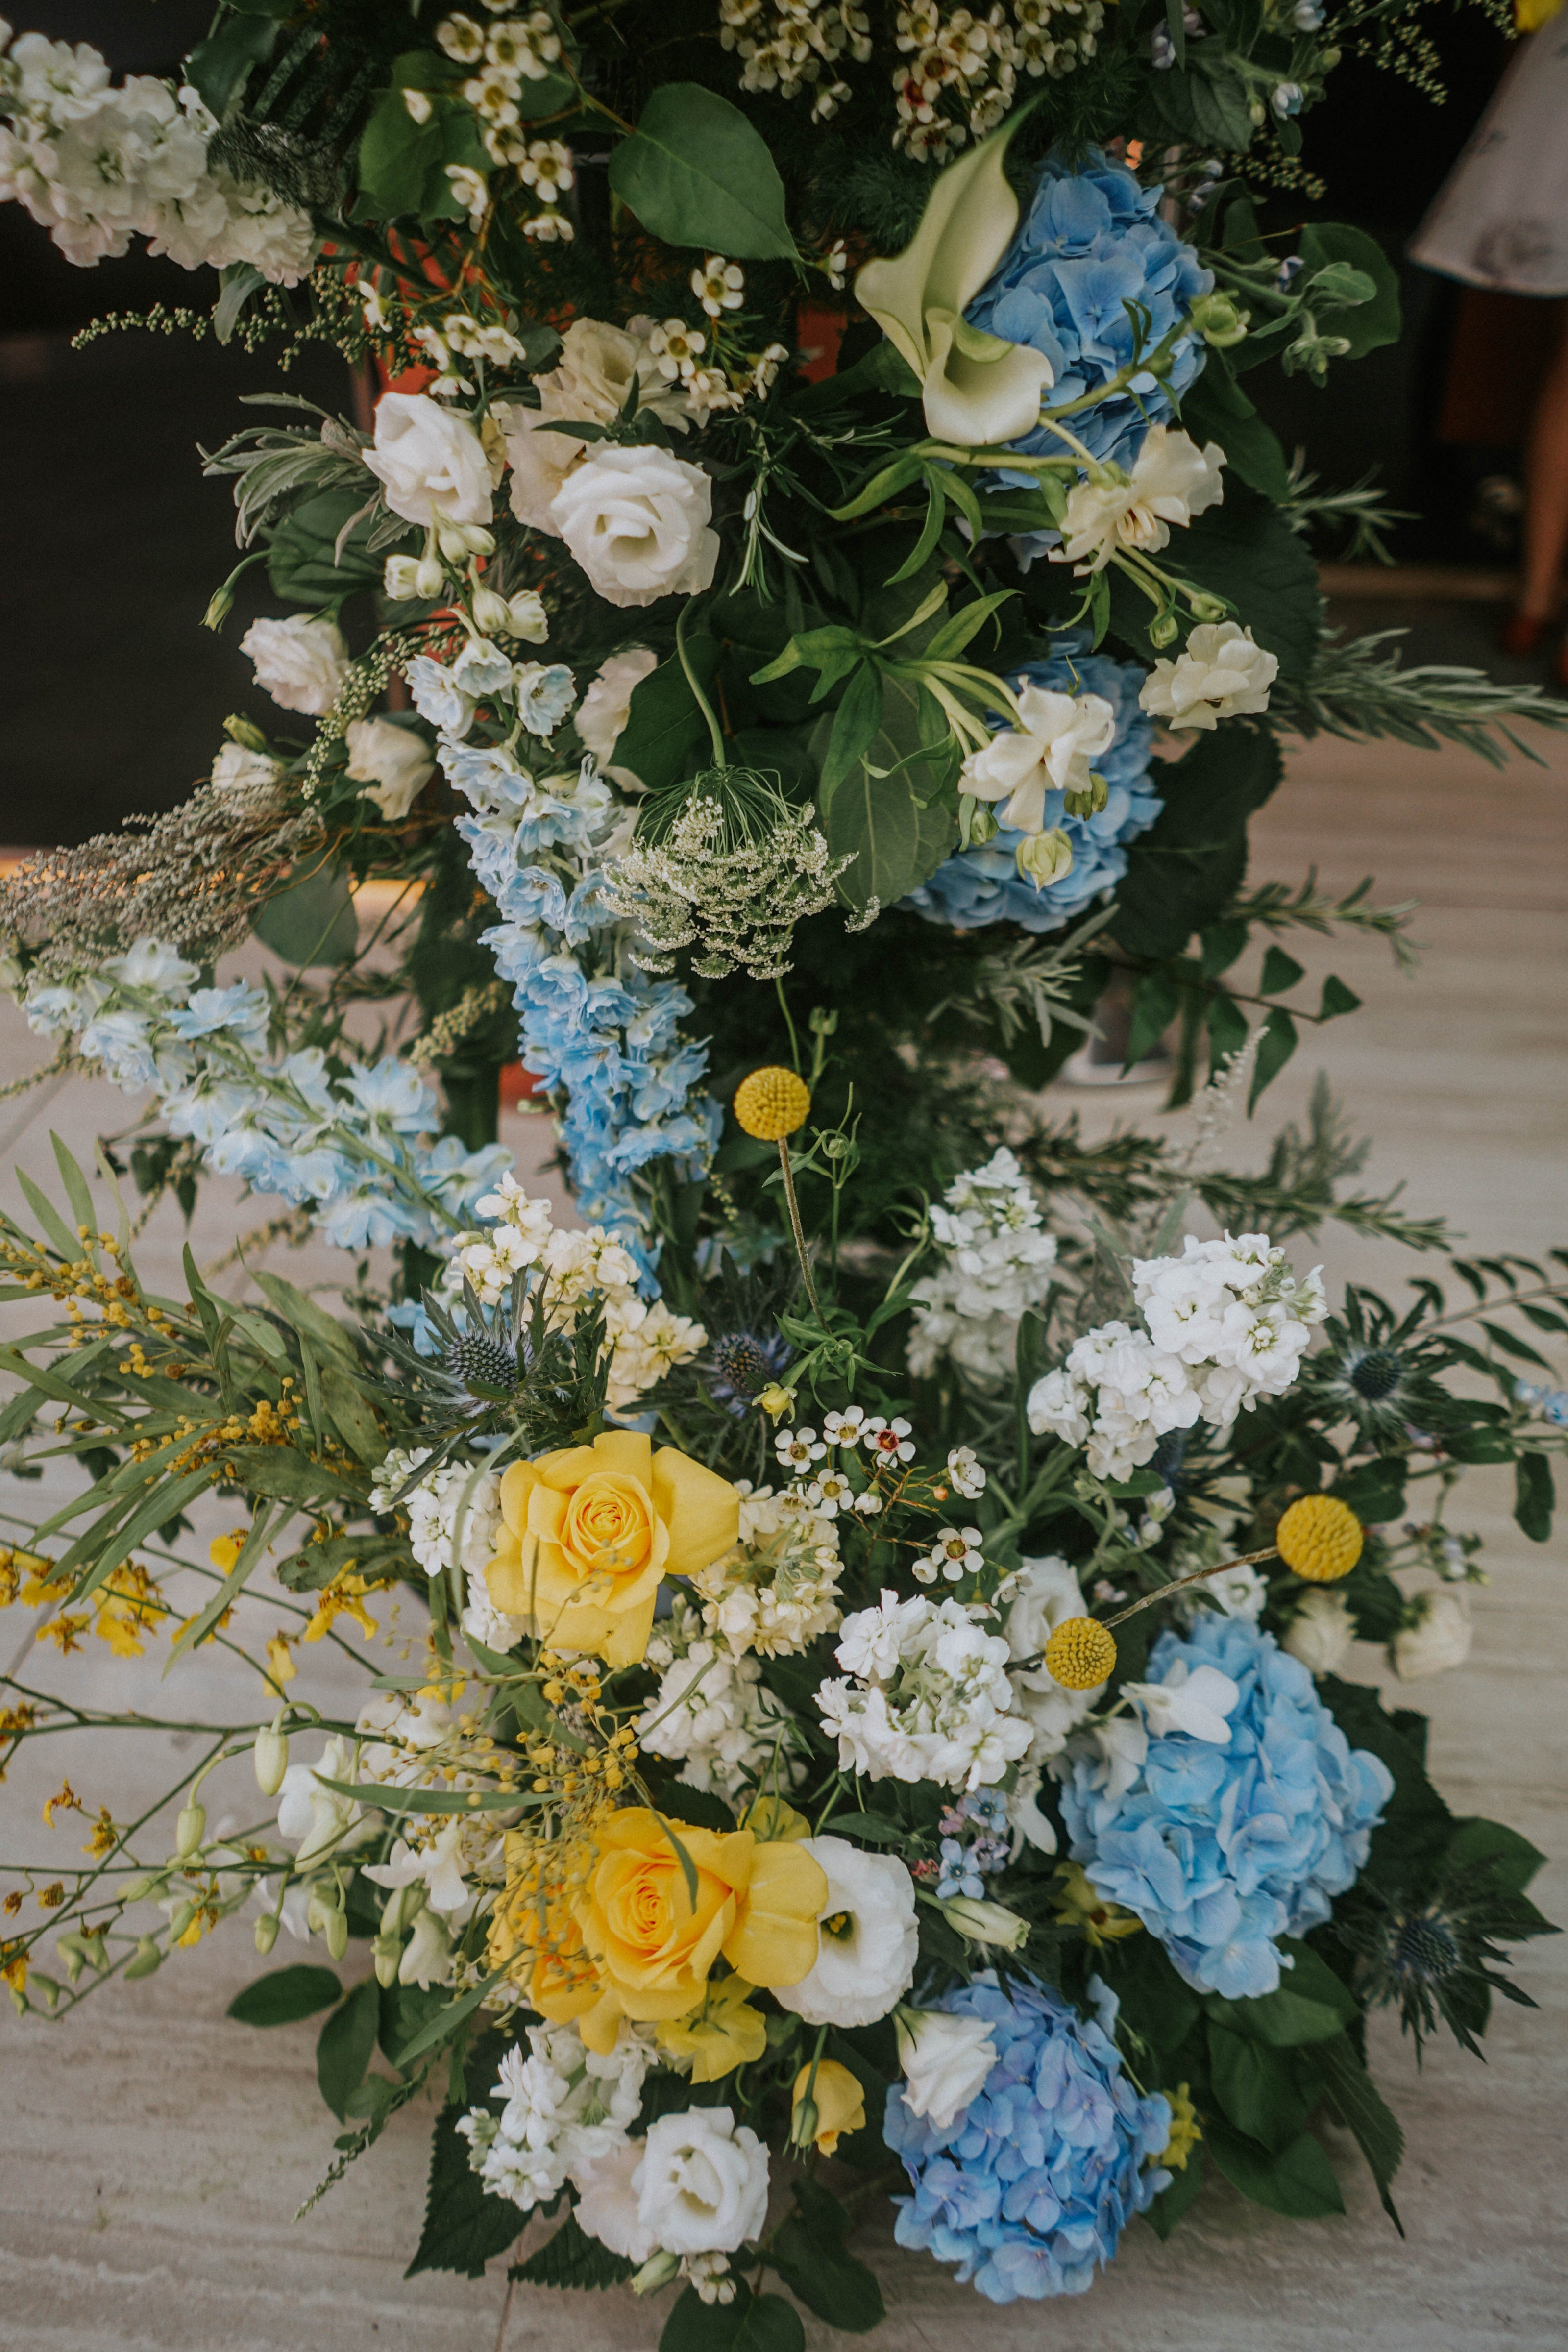 Blue hydrangeas nestled among white queen anne's lace and eustomas, put together with yellow roses and queen anne's lace near Fort Canning Park at Wesley Methodist Church for solemnisation ceremony